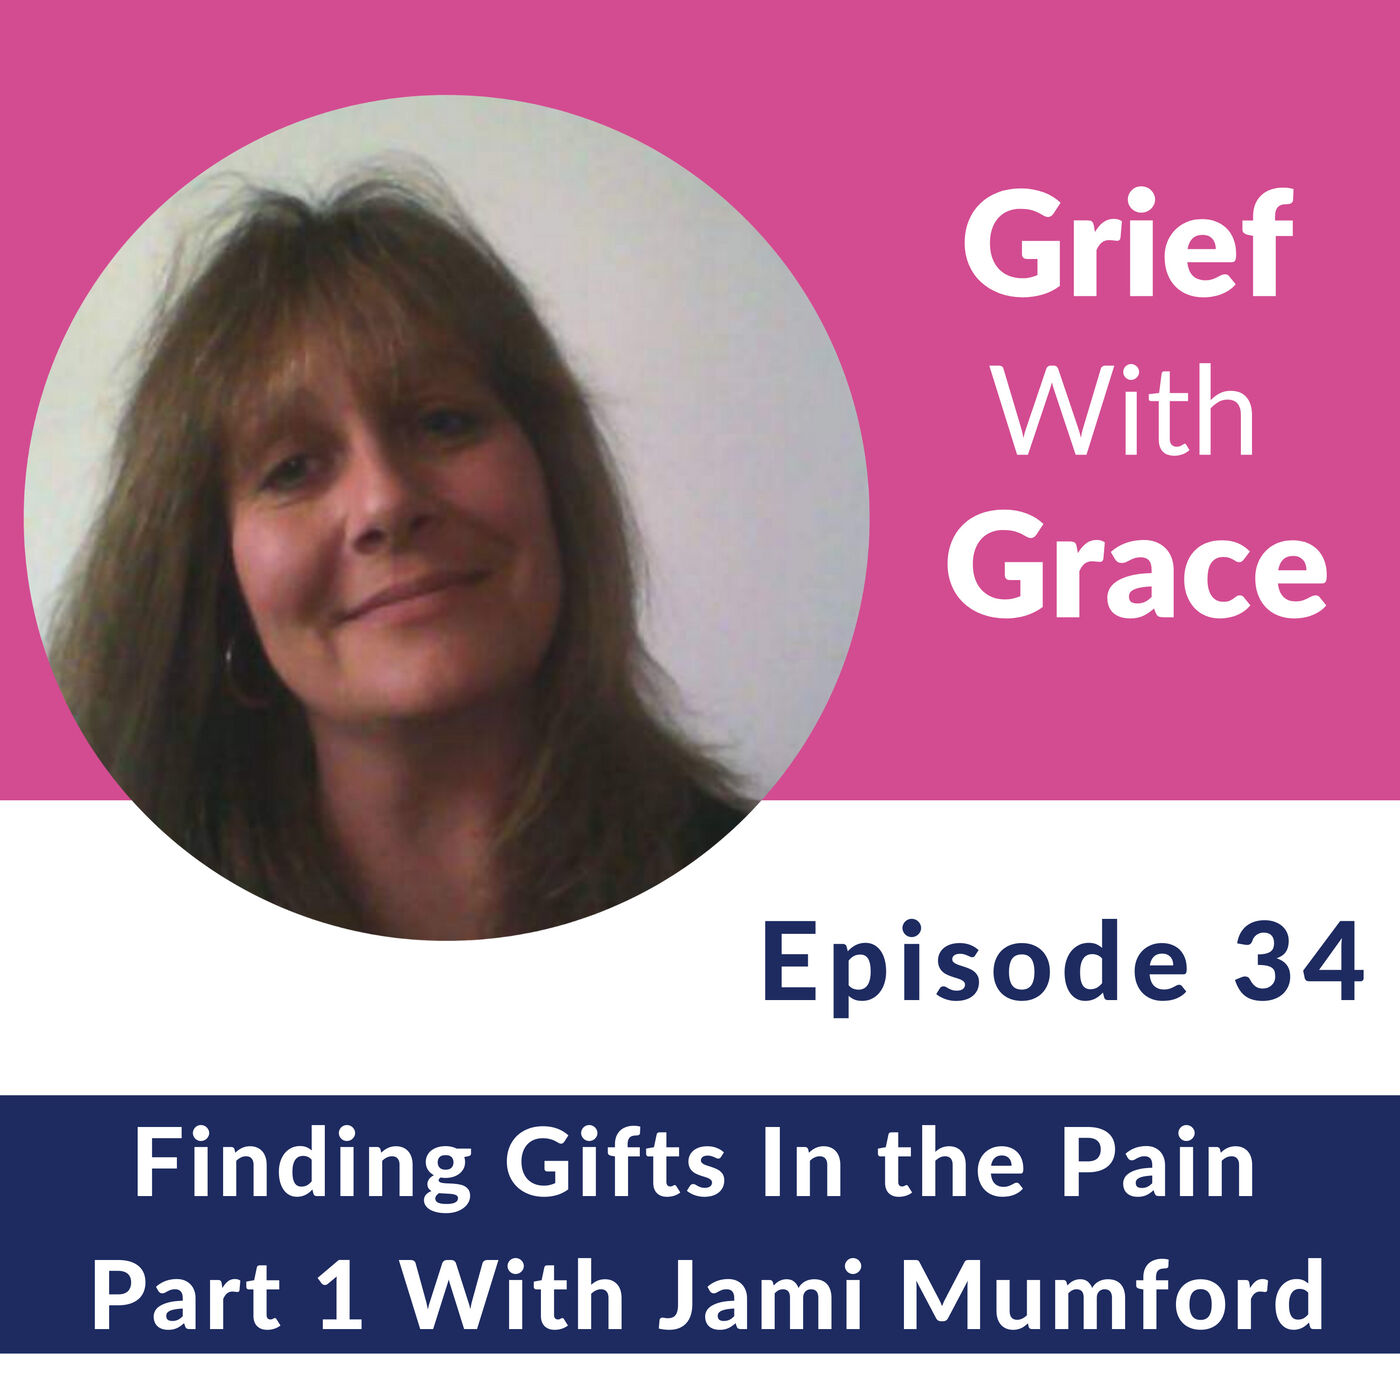 34. Finding Gifts In the Pain - Part 1 With Jami Mumford